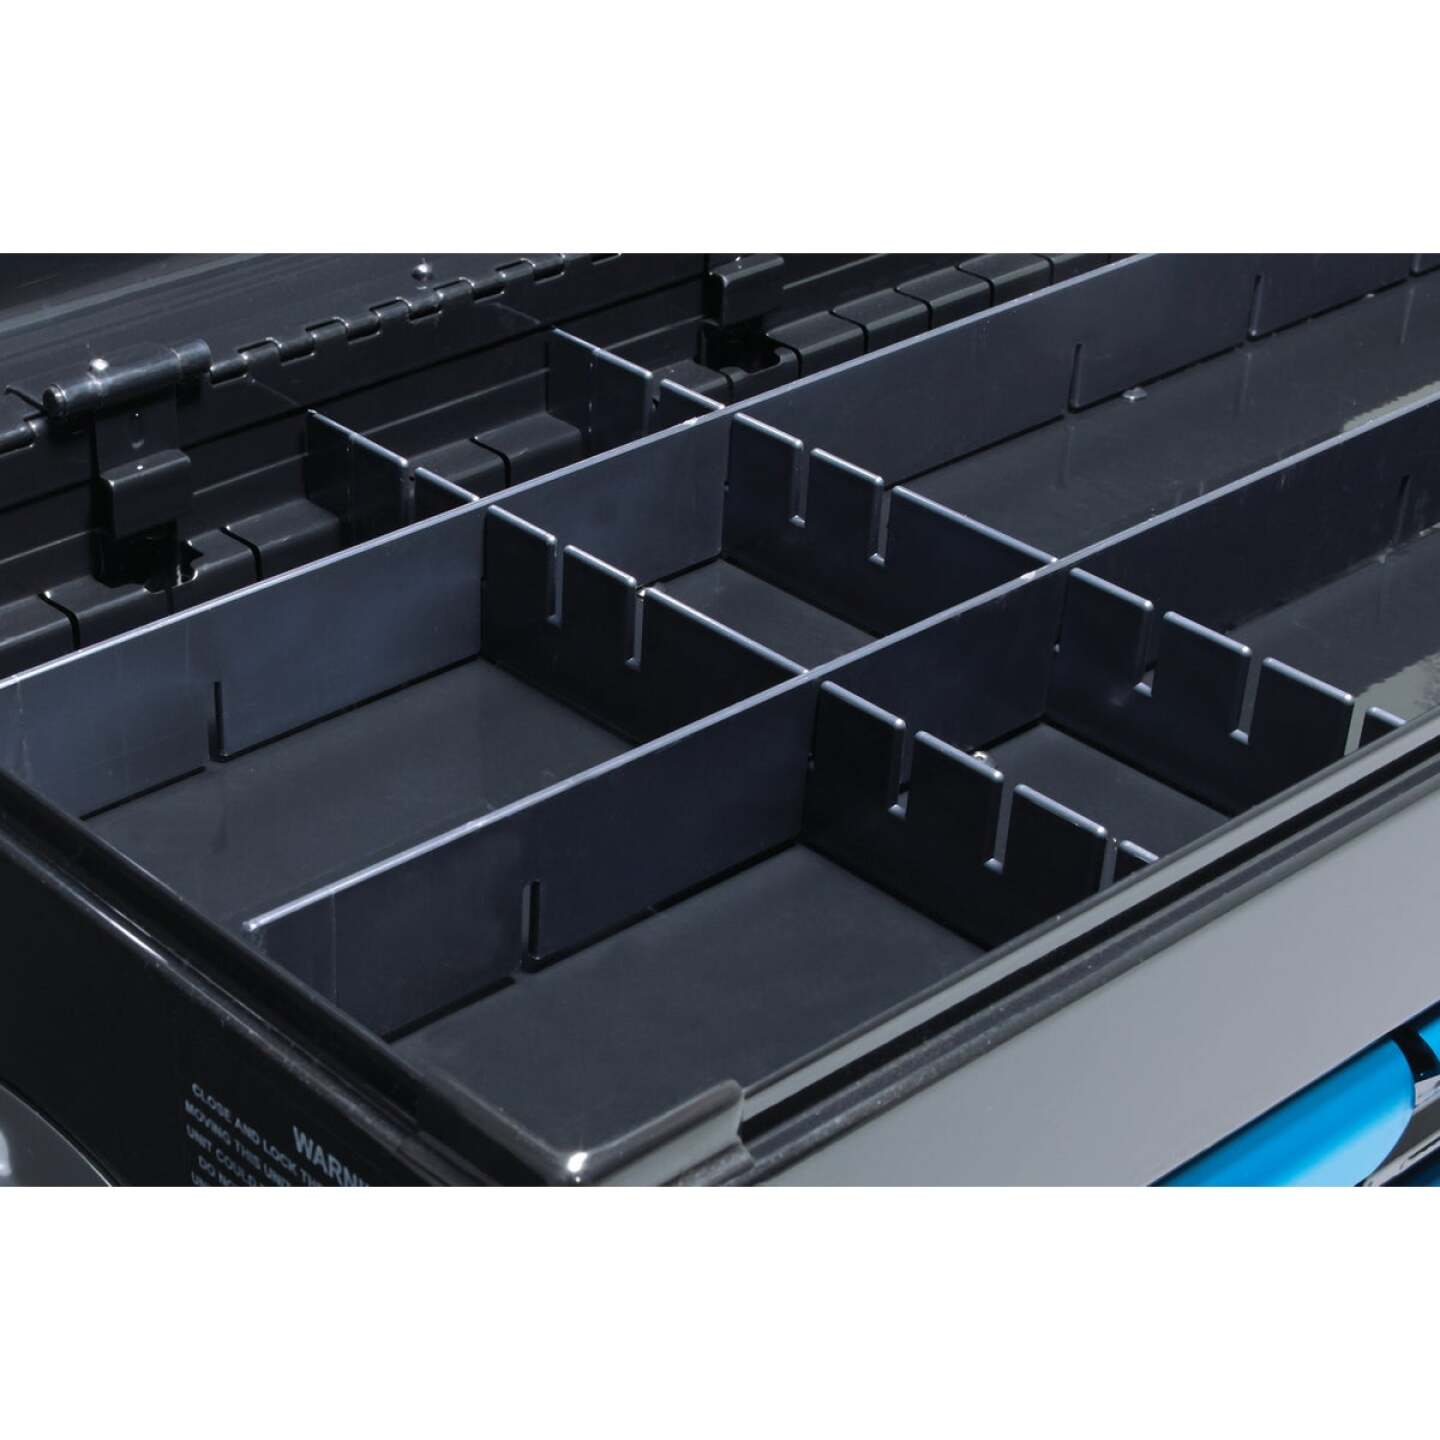 Channellock 26 In. 7-Drawer Black and Blue Tool Chest Image 8